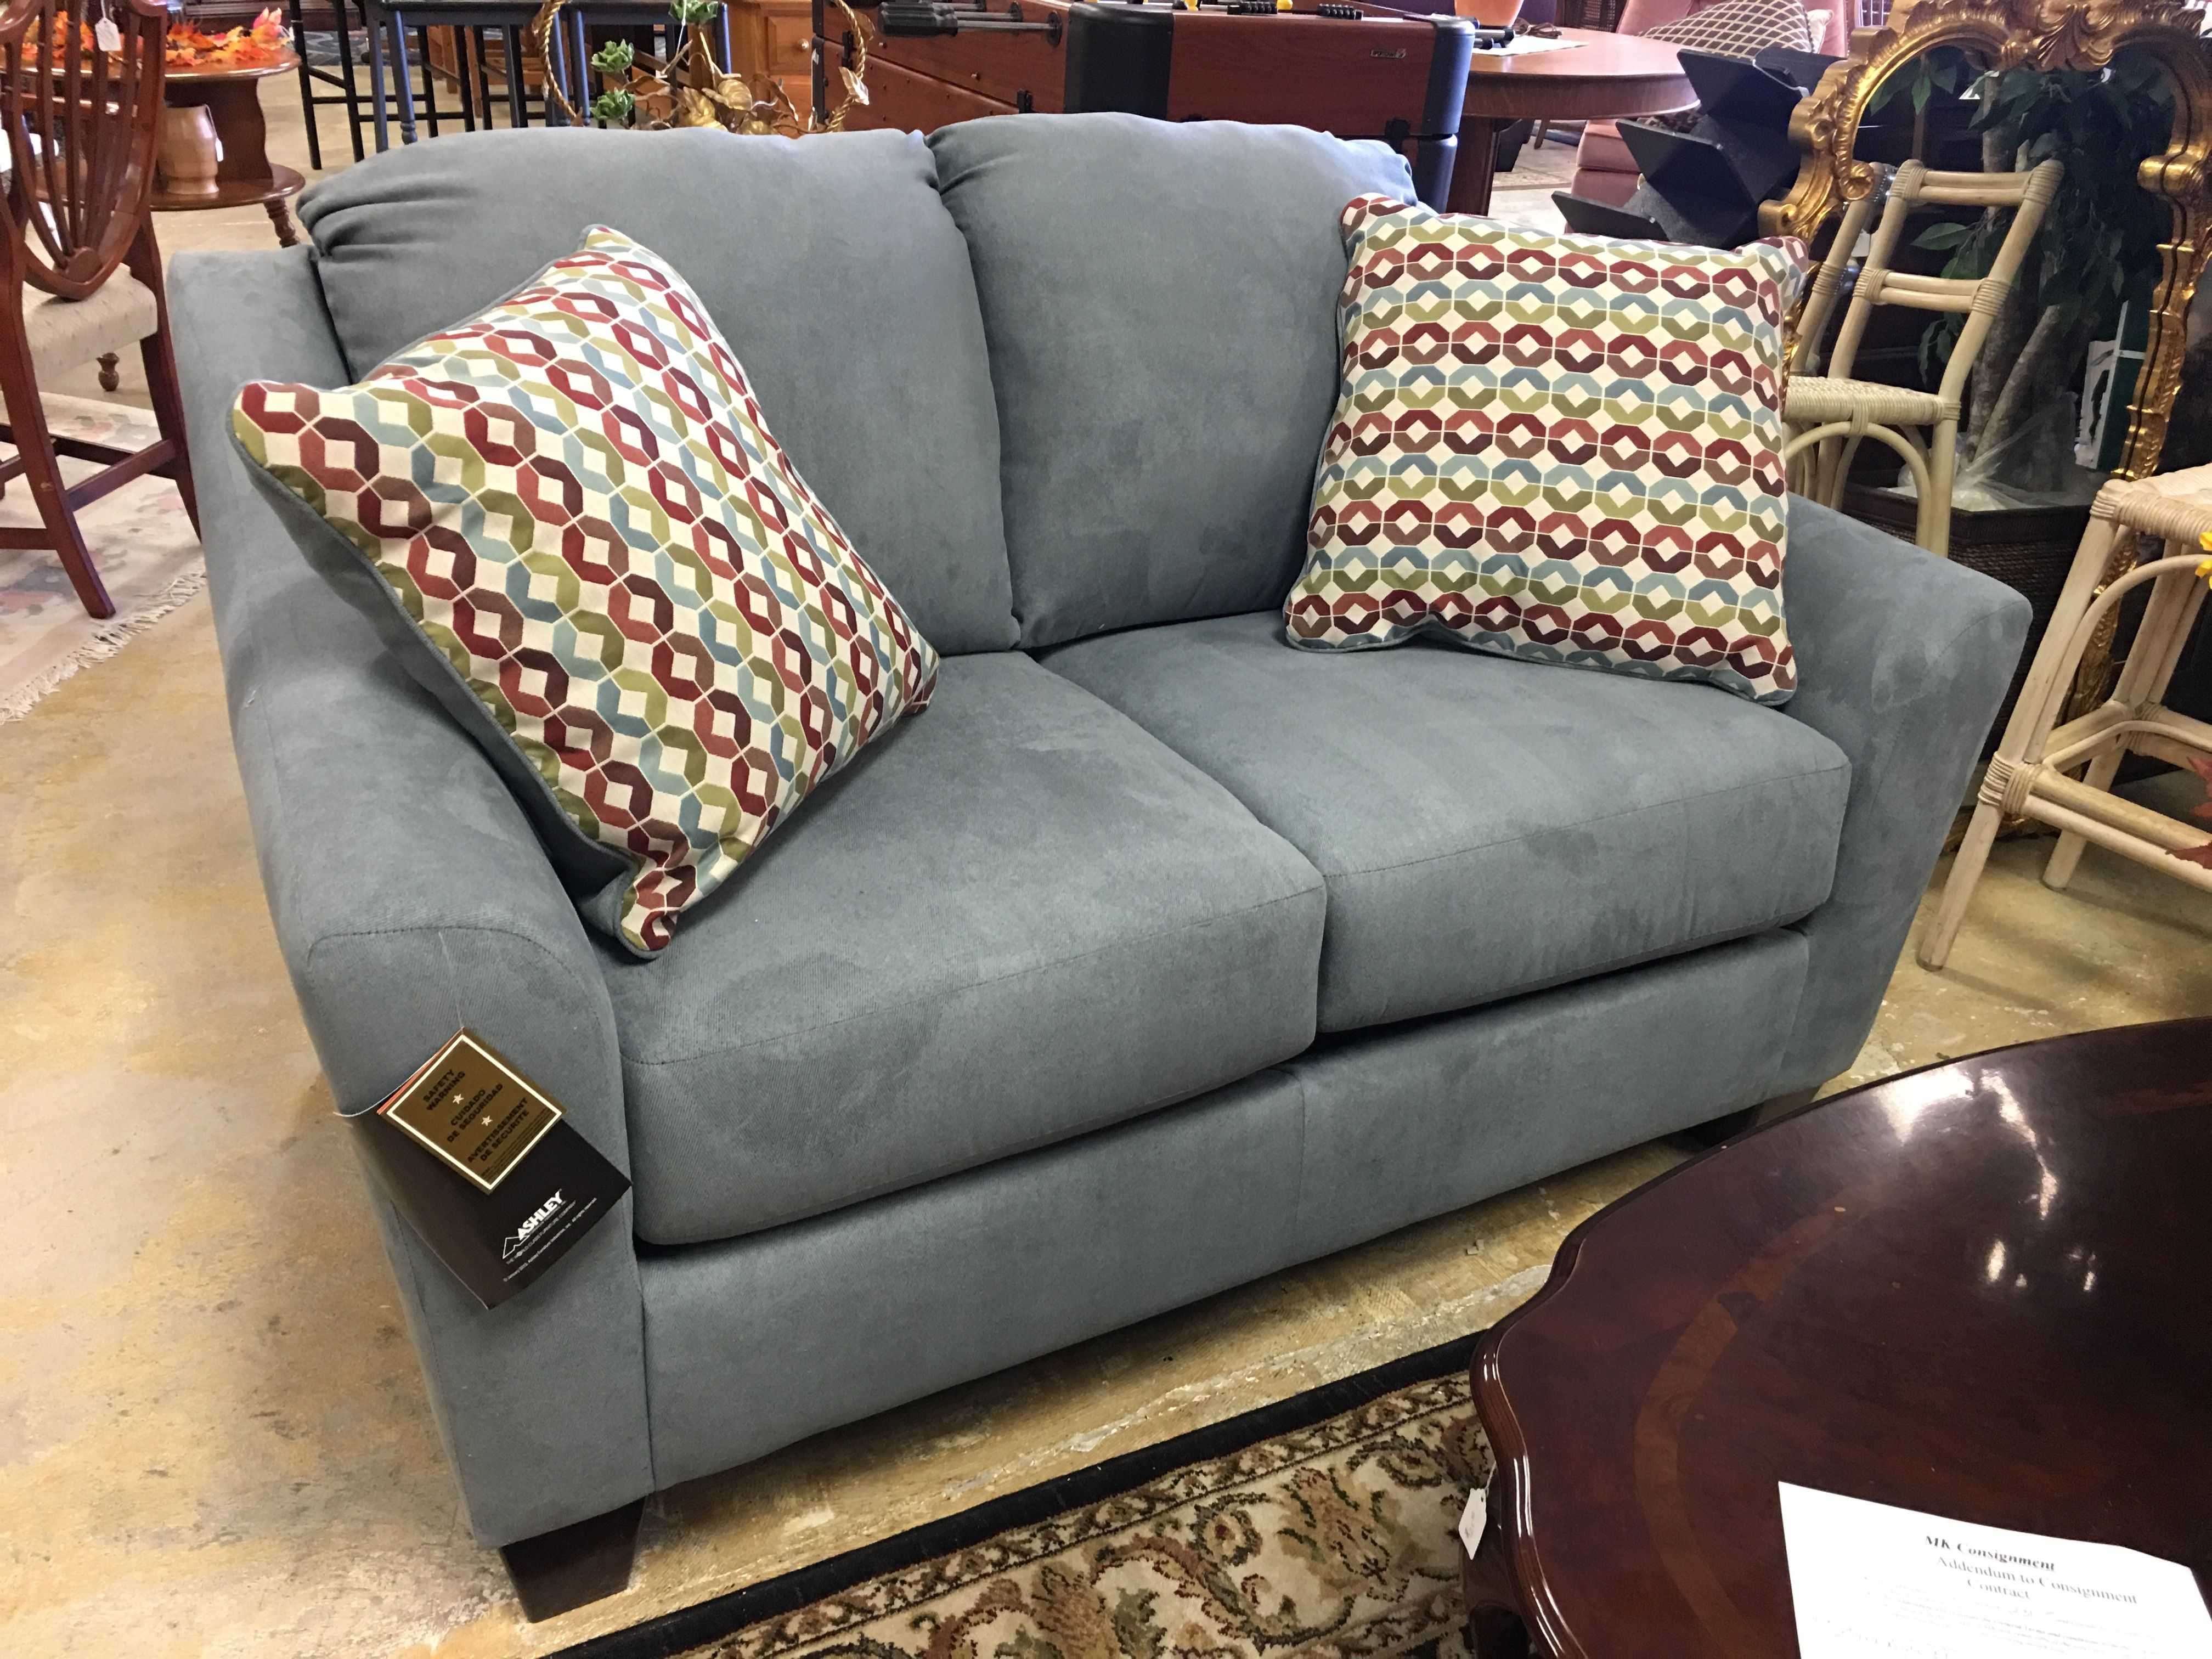 ideas check size of inspirations wichita store stores ks consignment furniture in large no hand credit image kansas